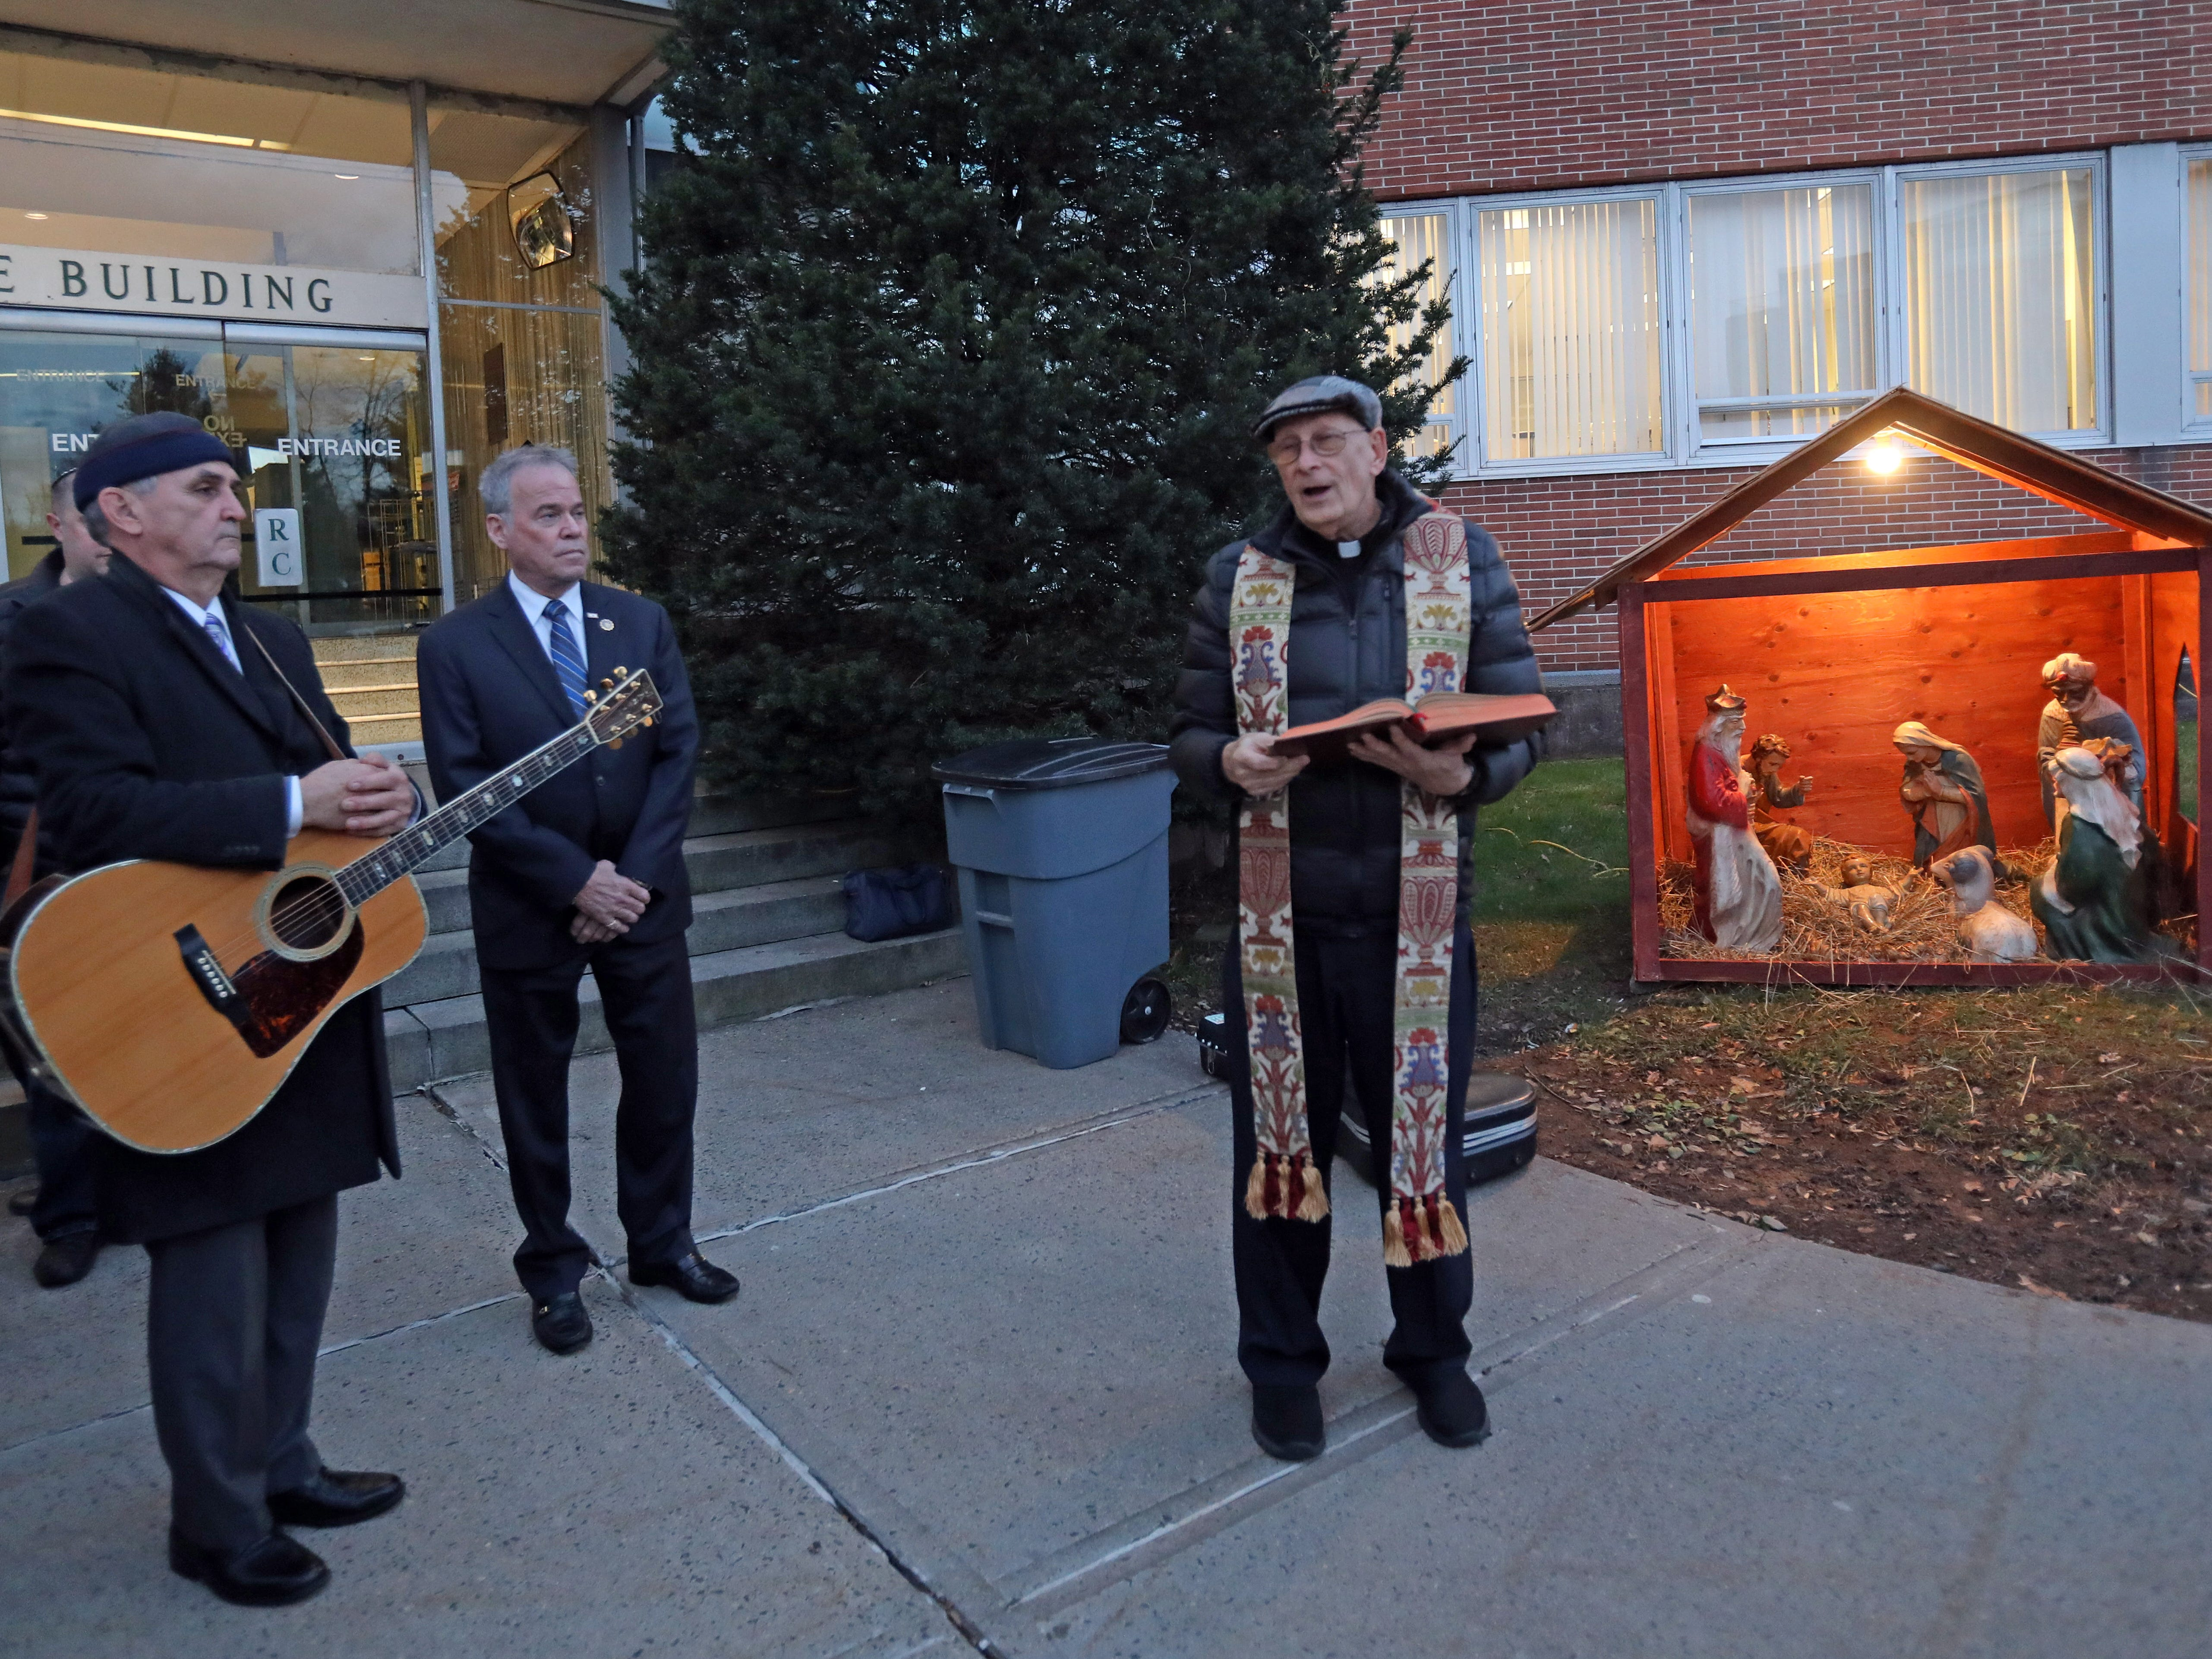 Father Tom Ruekert, center, of Marian Shrine Church of Stony Point says a prayer during The Blessing of the Nativity Creche in front of the Rockland County Office Building in New City Dec. 3, 2018.